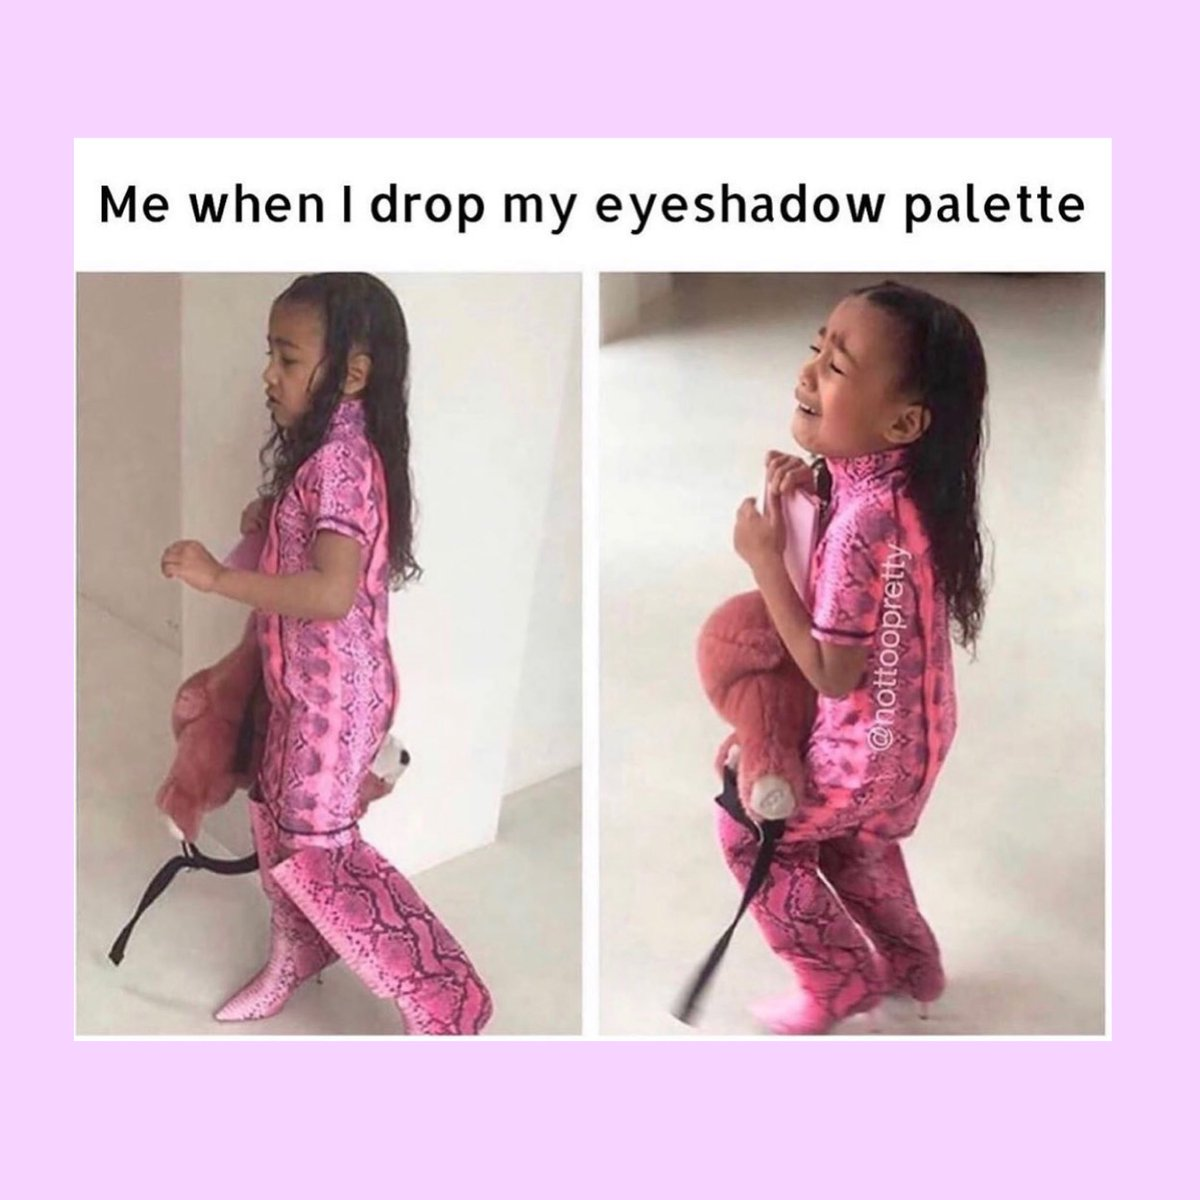 It's a special Kind of Hurt....#makeupmemes #Kardashians #makeuppic.twitter.com/wF1oAGDrrq